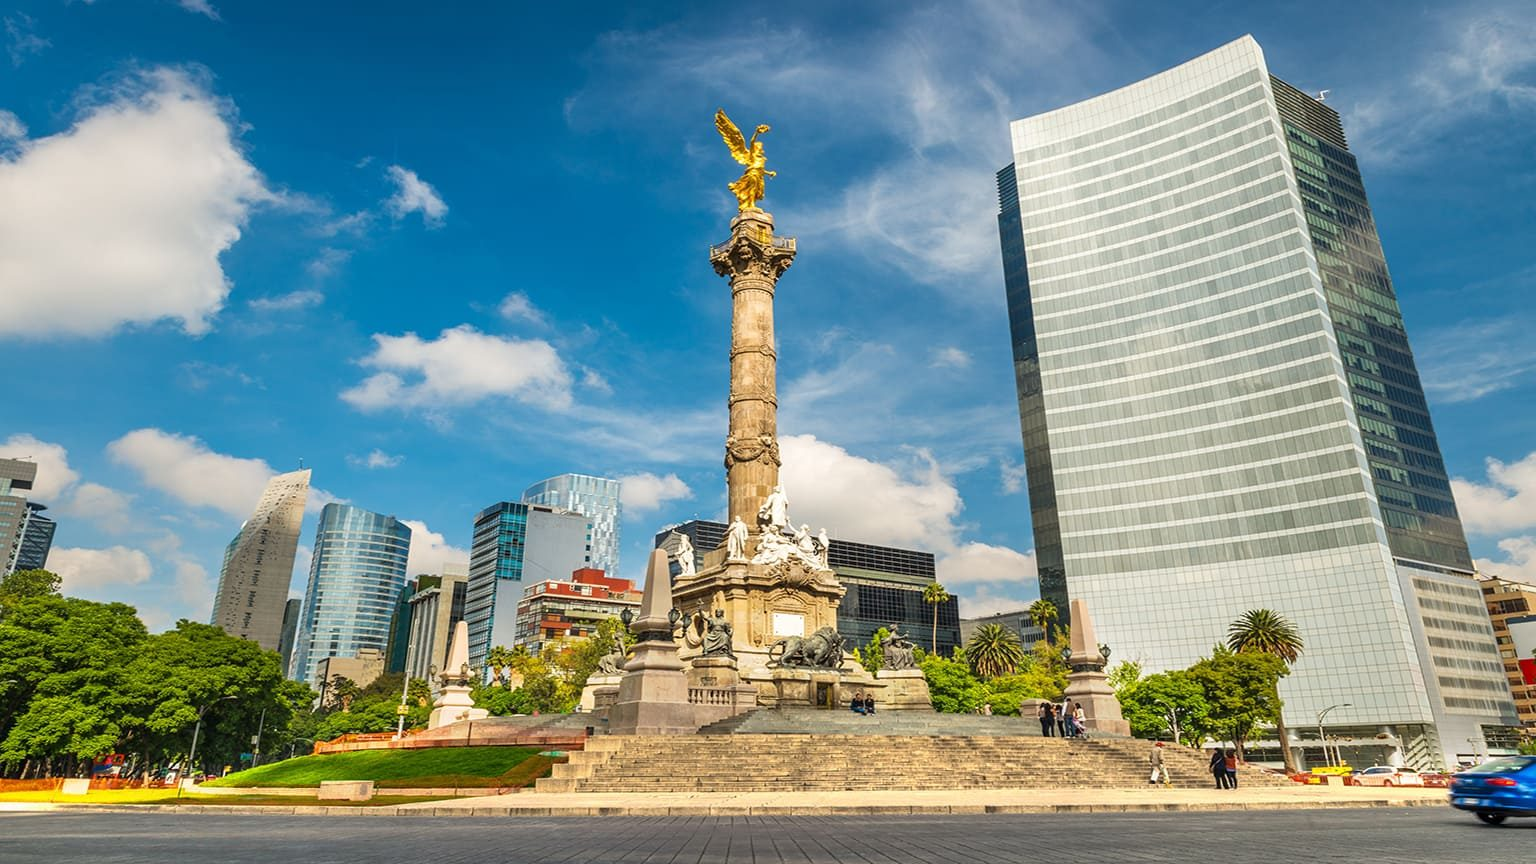 The Angel of Independence stands in the center of a roundabout in Mexico City, Mexico